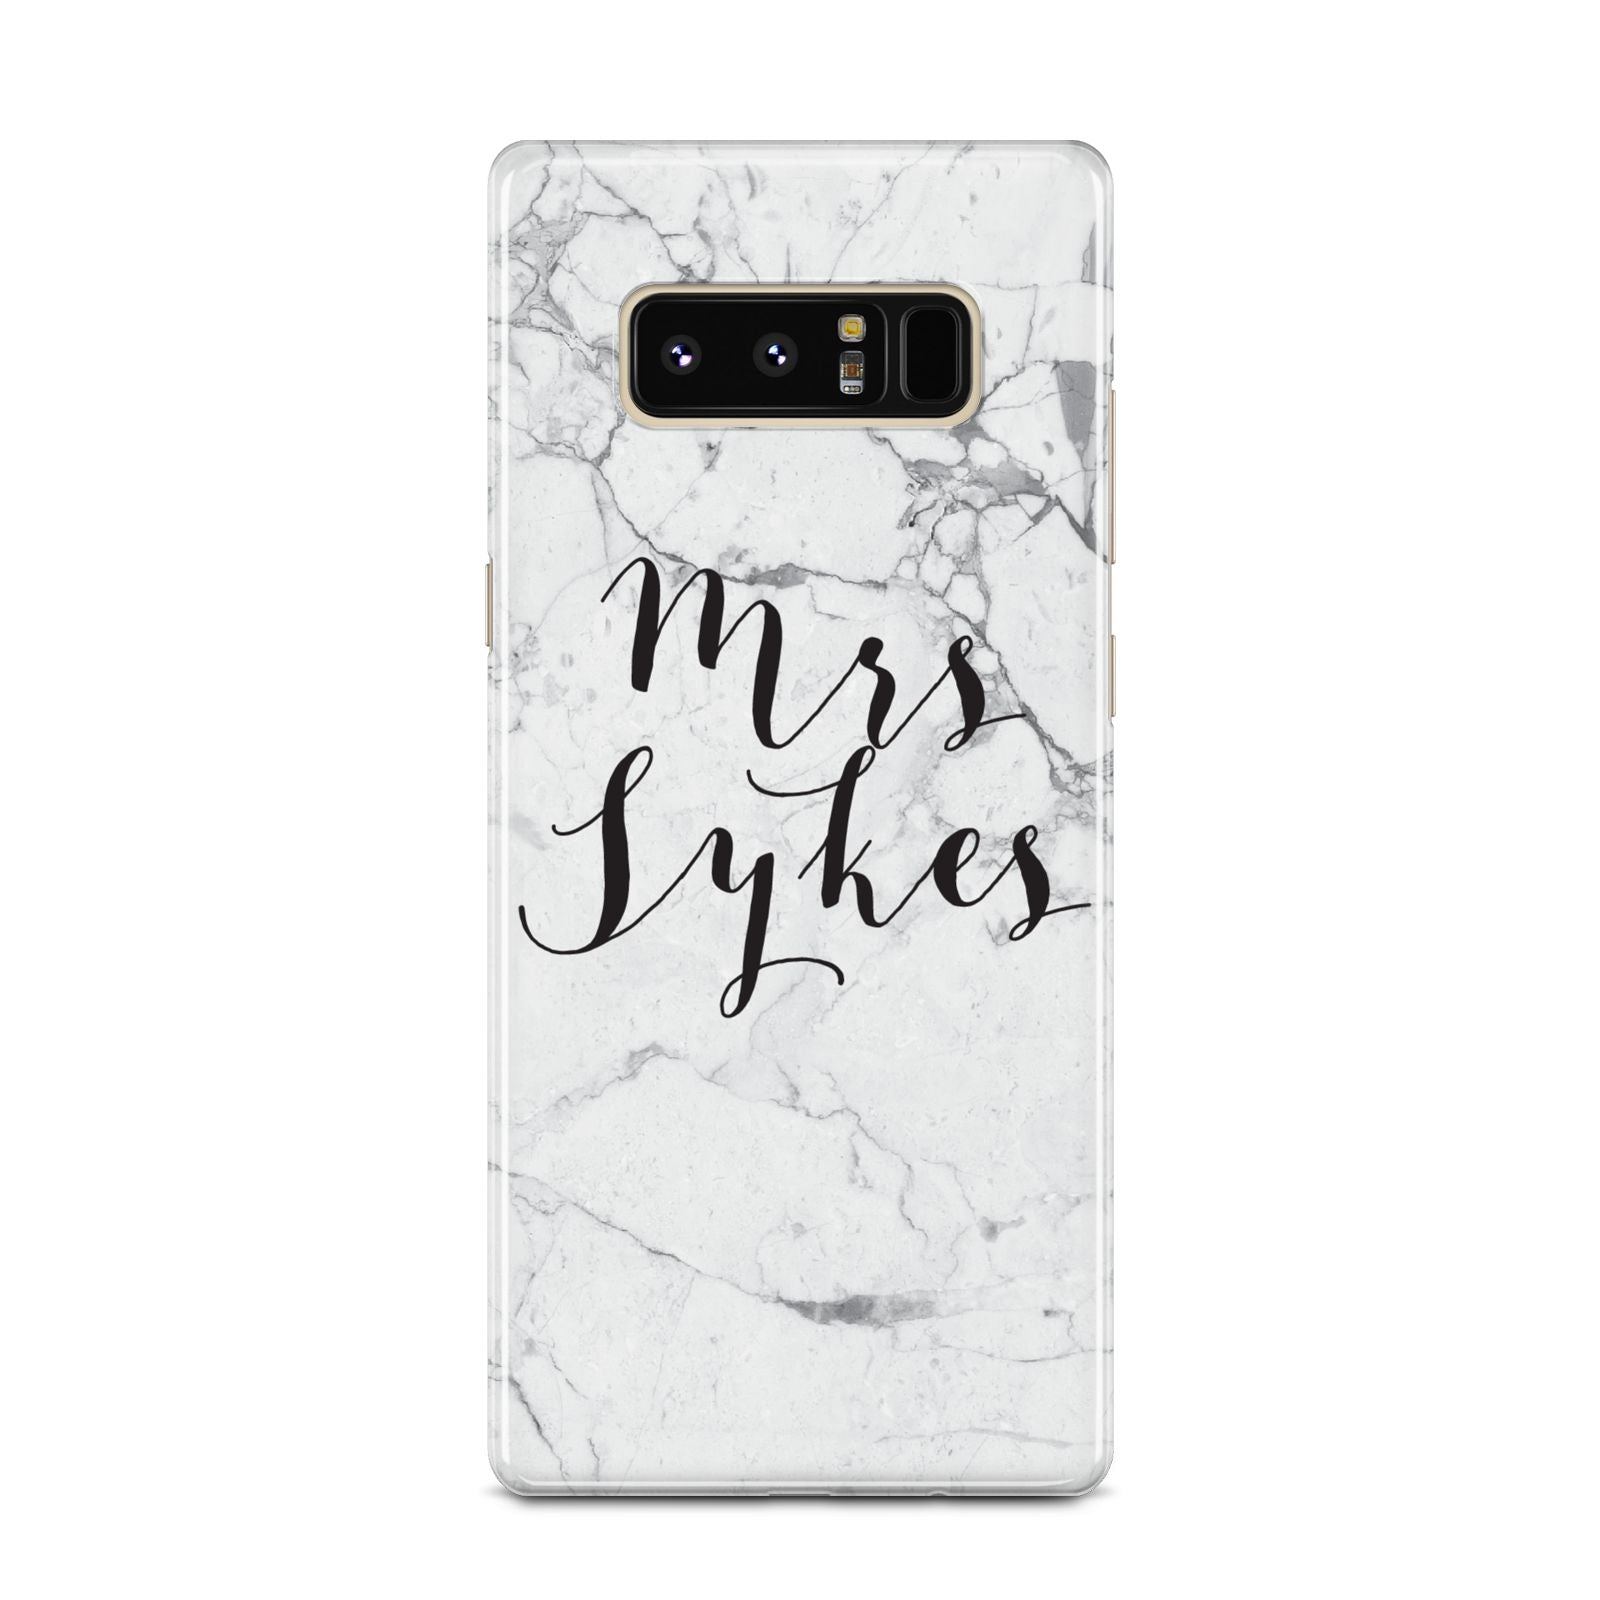 Surname Personalised Marble Samsung Galaxy Note 8 Case